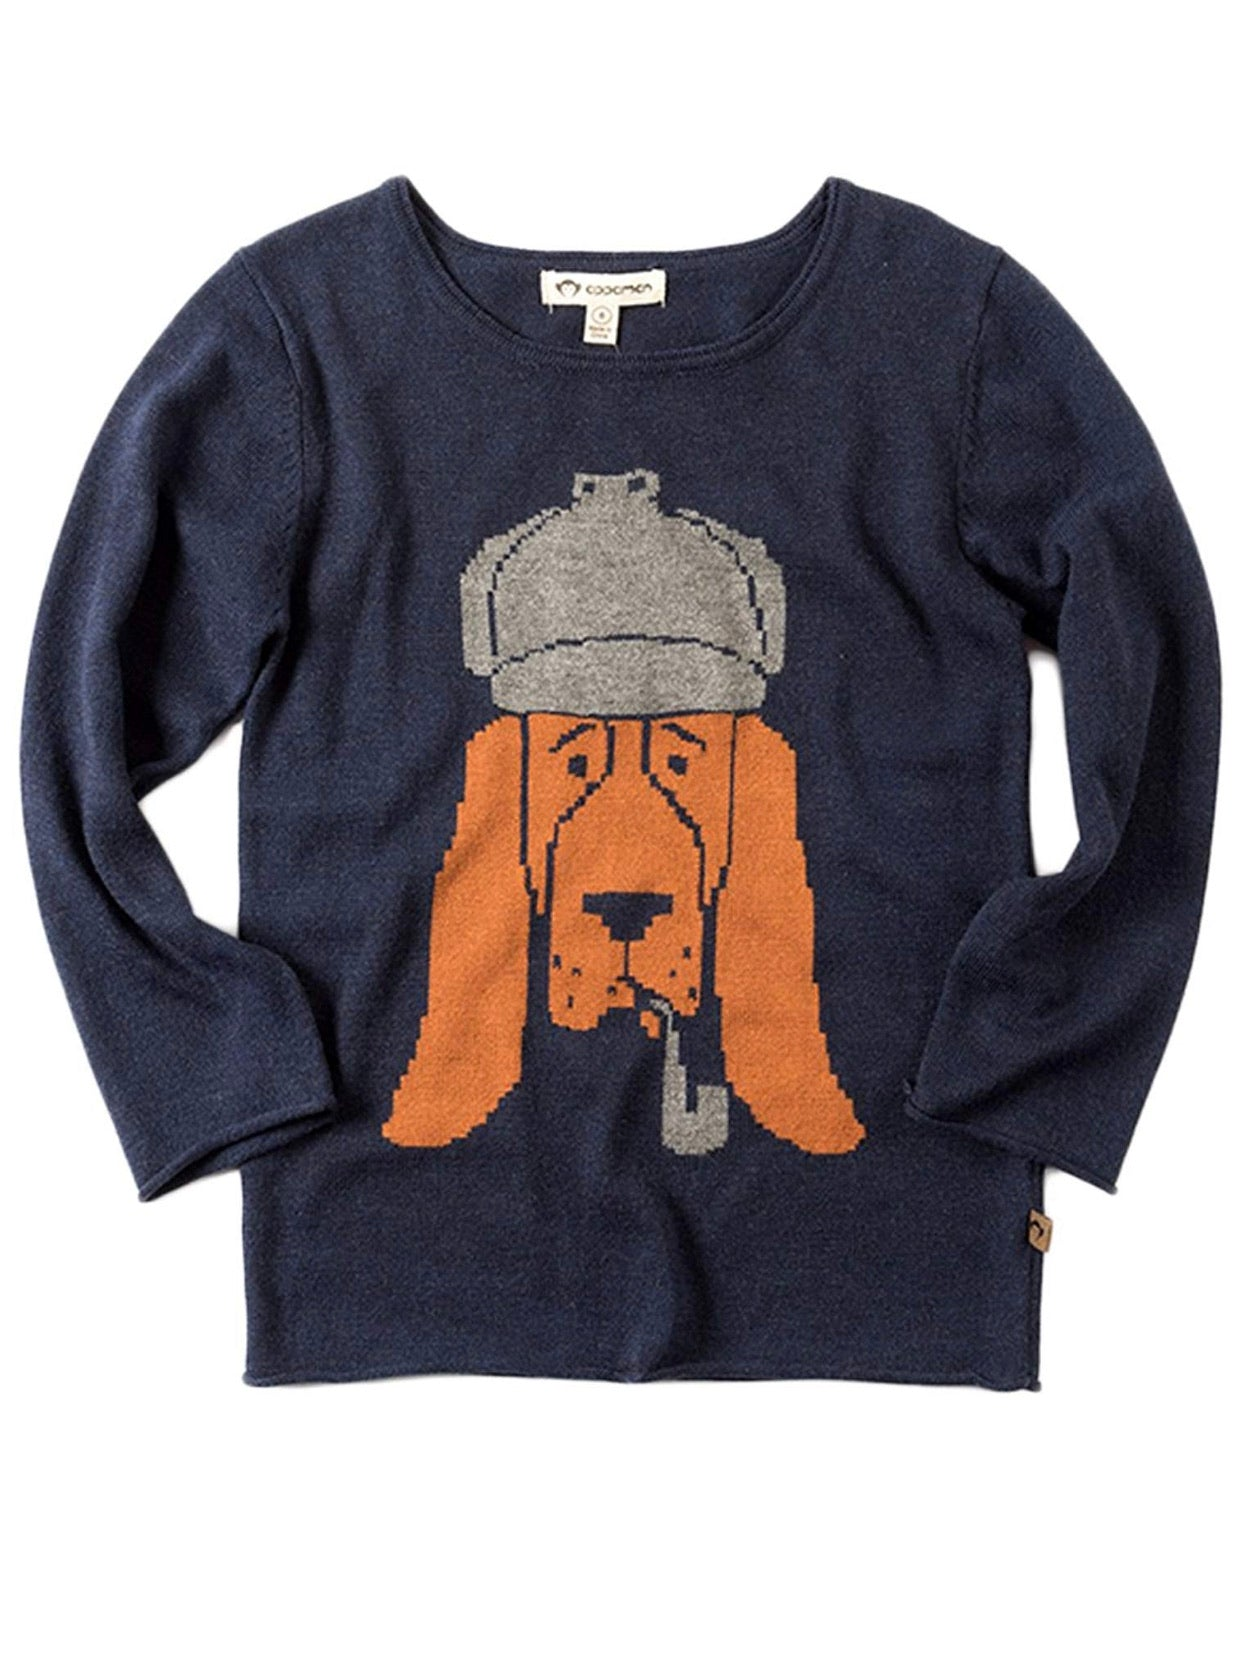 Bromley Bloodhound Sweater | Unique Finds for Kids